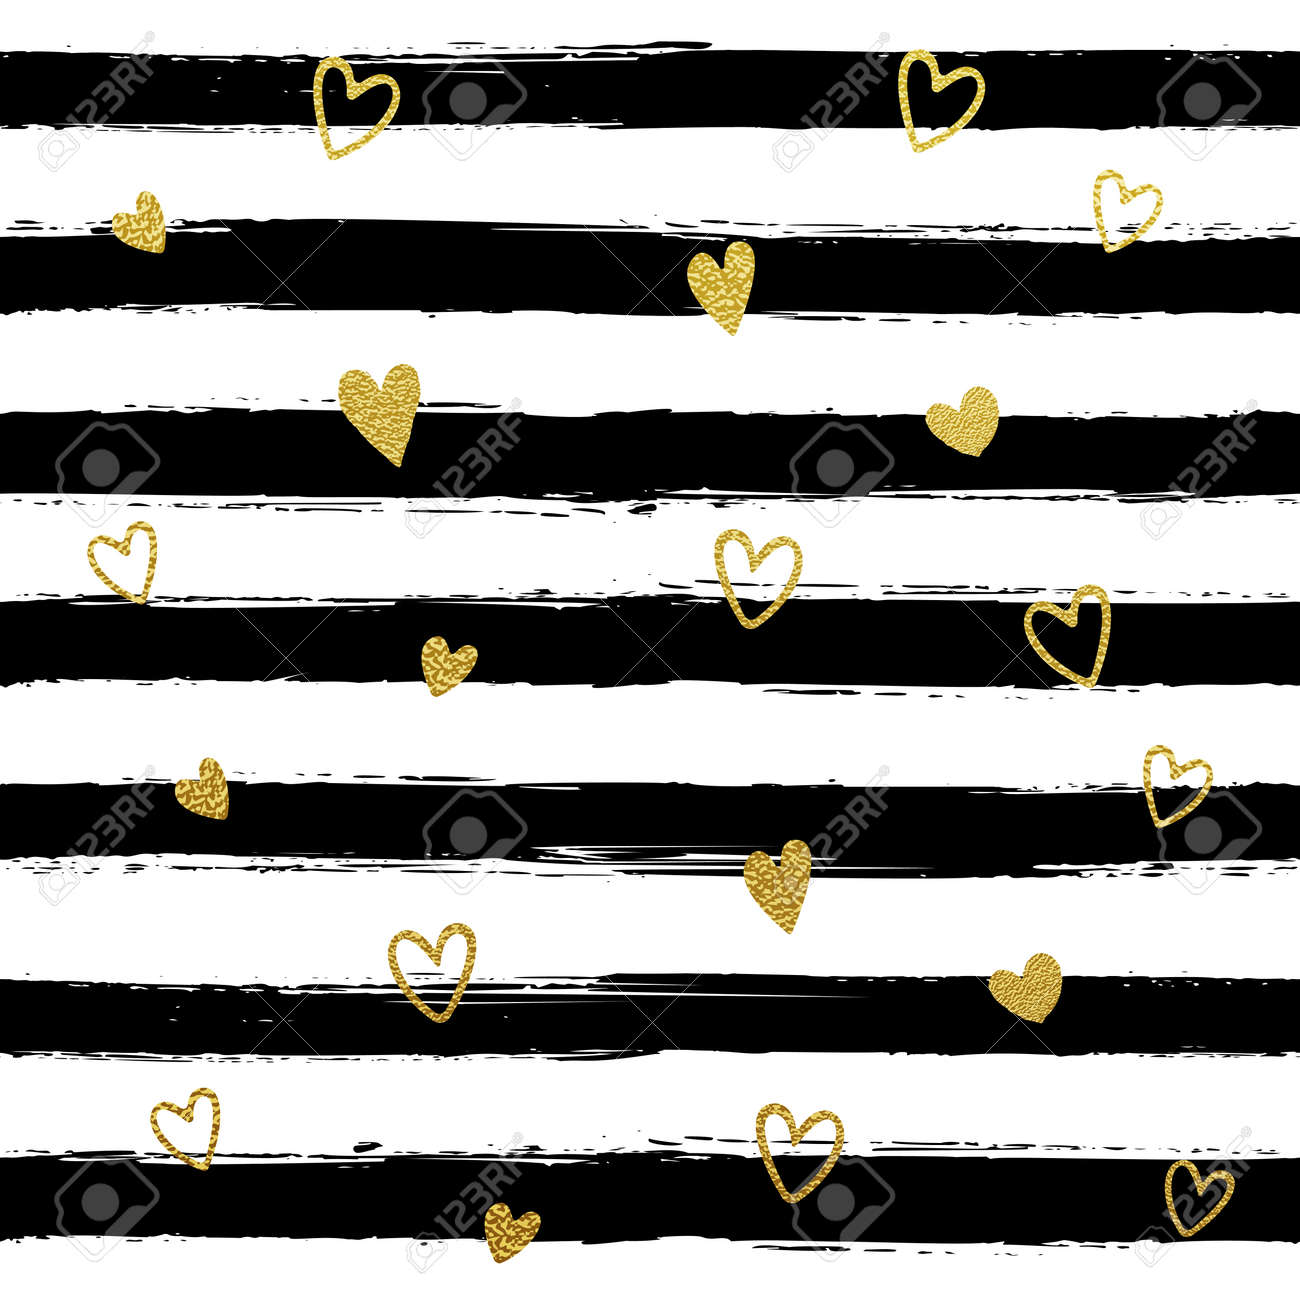 Glitter Gold Striped Wallpaper Paint Brush Strokes Background Royalty Free Cliparts Vectors And Stock Illustration Image 57341519